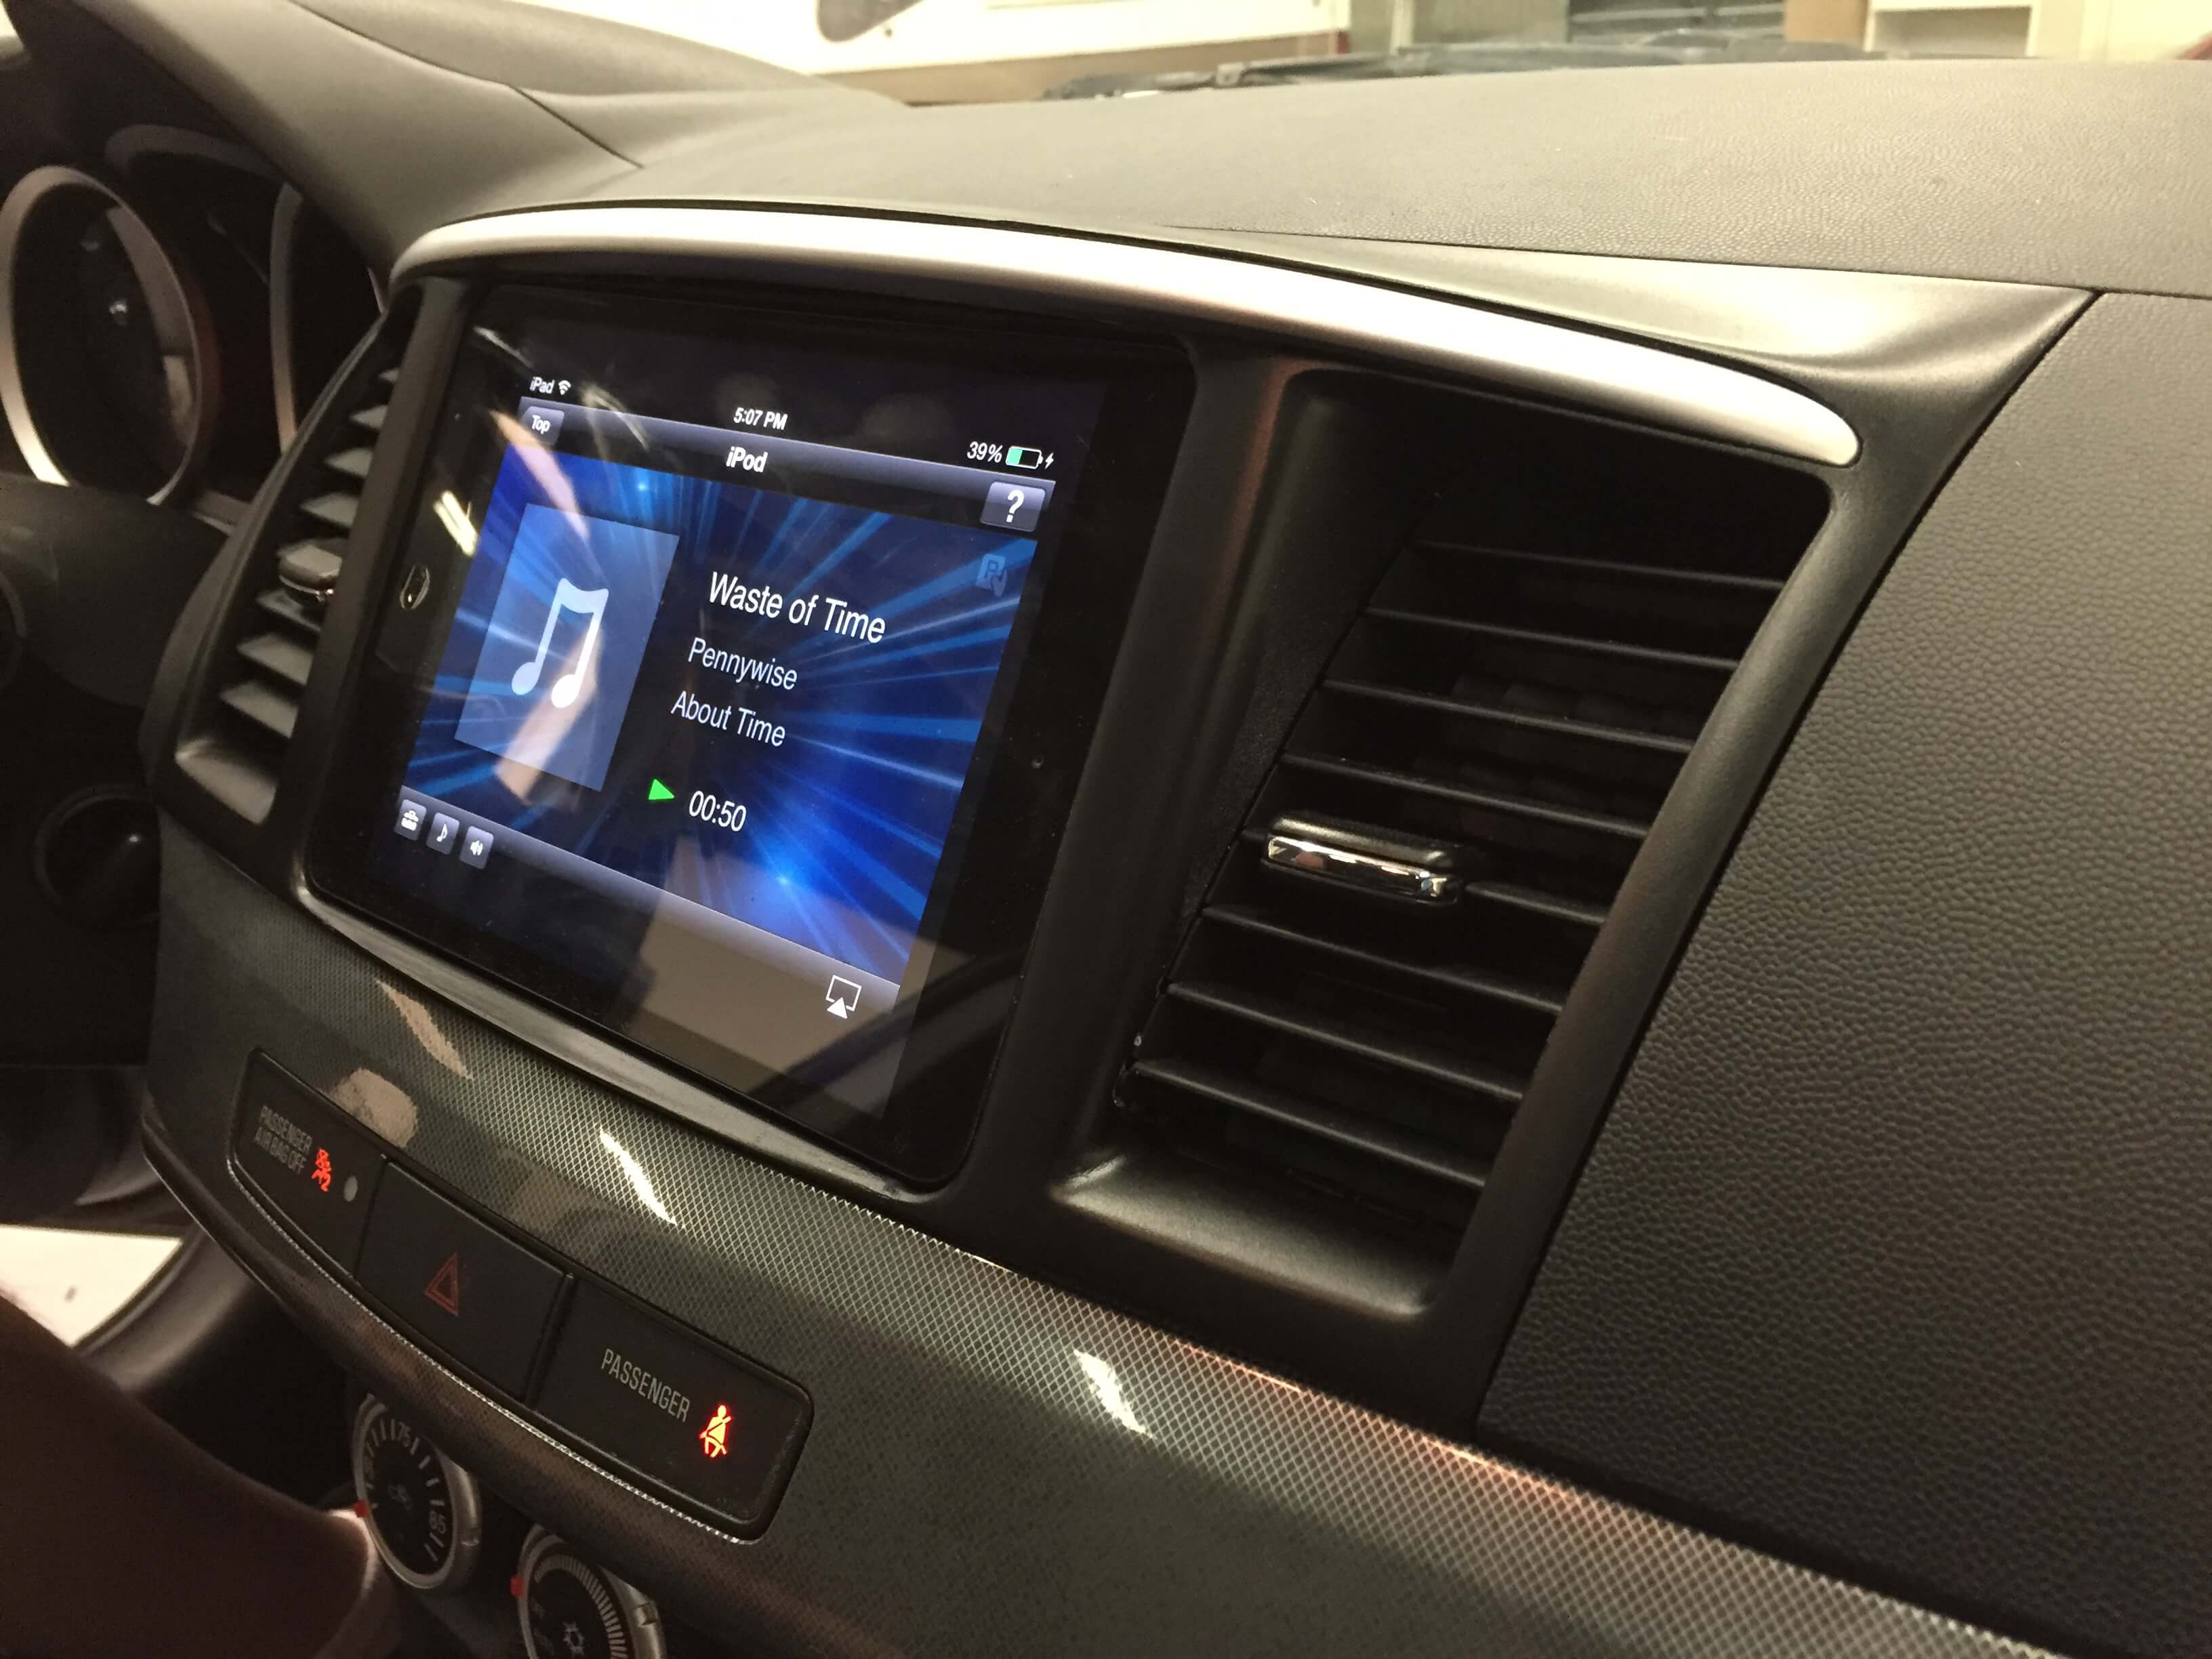 2008 Mitsubishi Lancer Gets An Ipad In The Dash And A Sound System